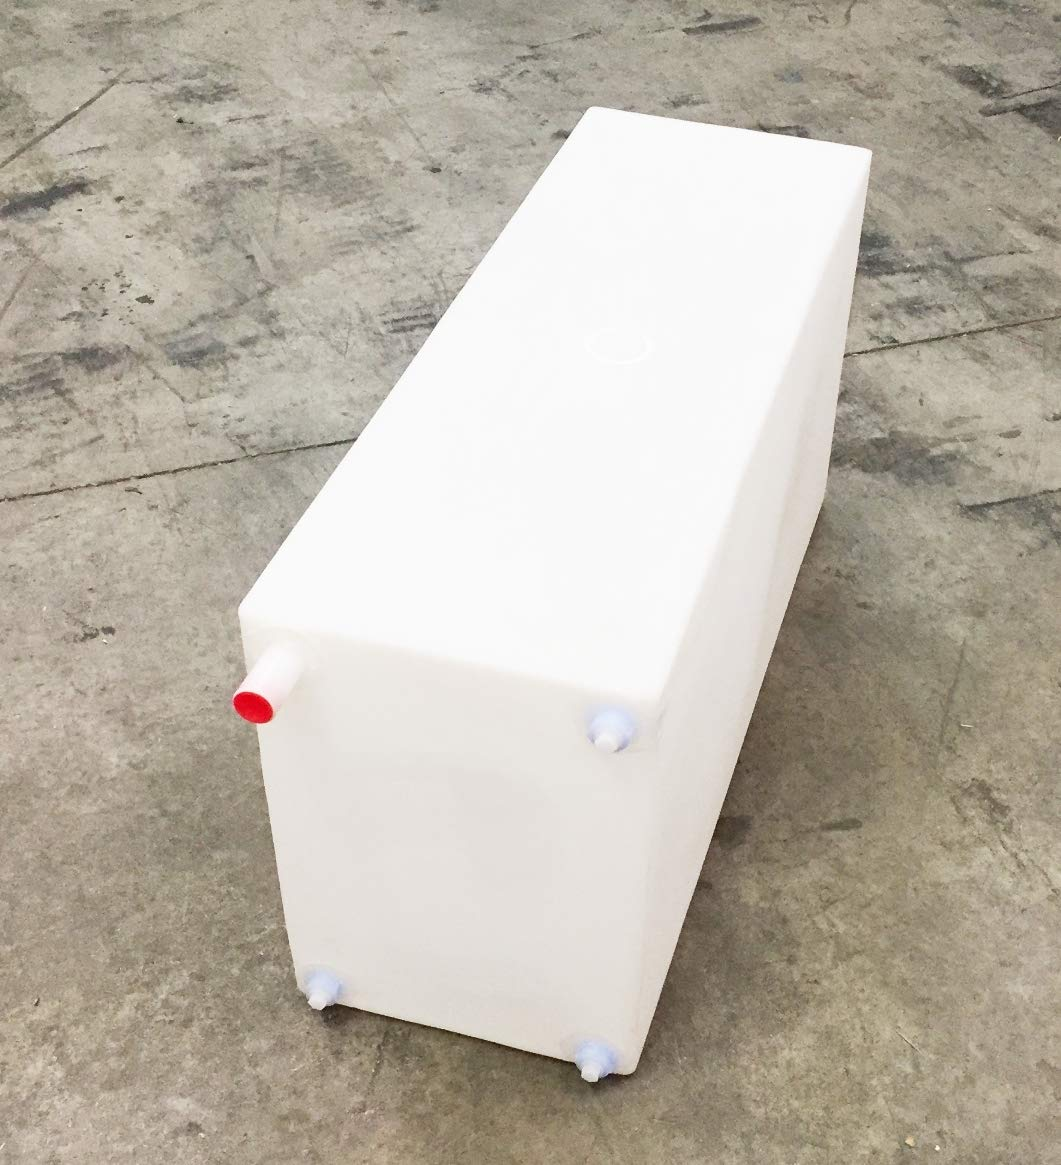 A.A Fresh and Gray Water Holding Tank | Combo Pack | RV Water Holding Tanks | Camper Holding Tanks - BPA Free (30 Gallon & 42 Gallon) by A.A (Image #1)